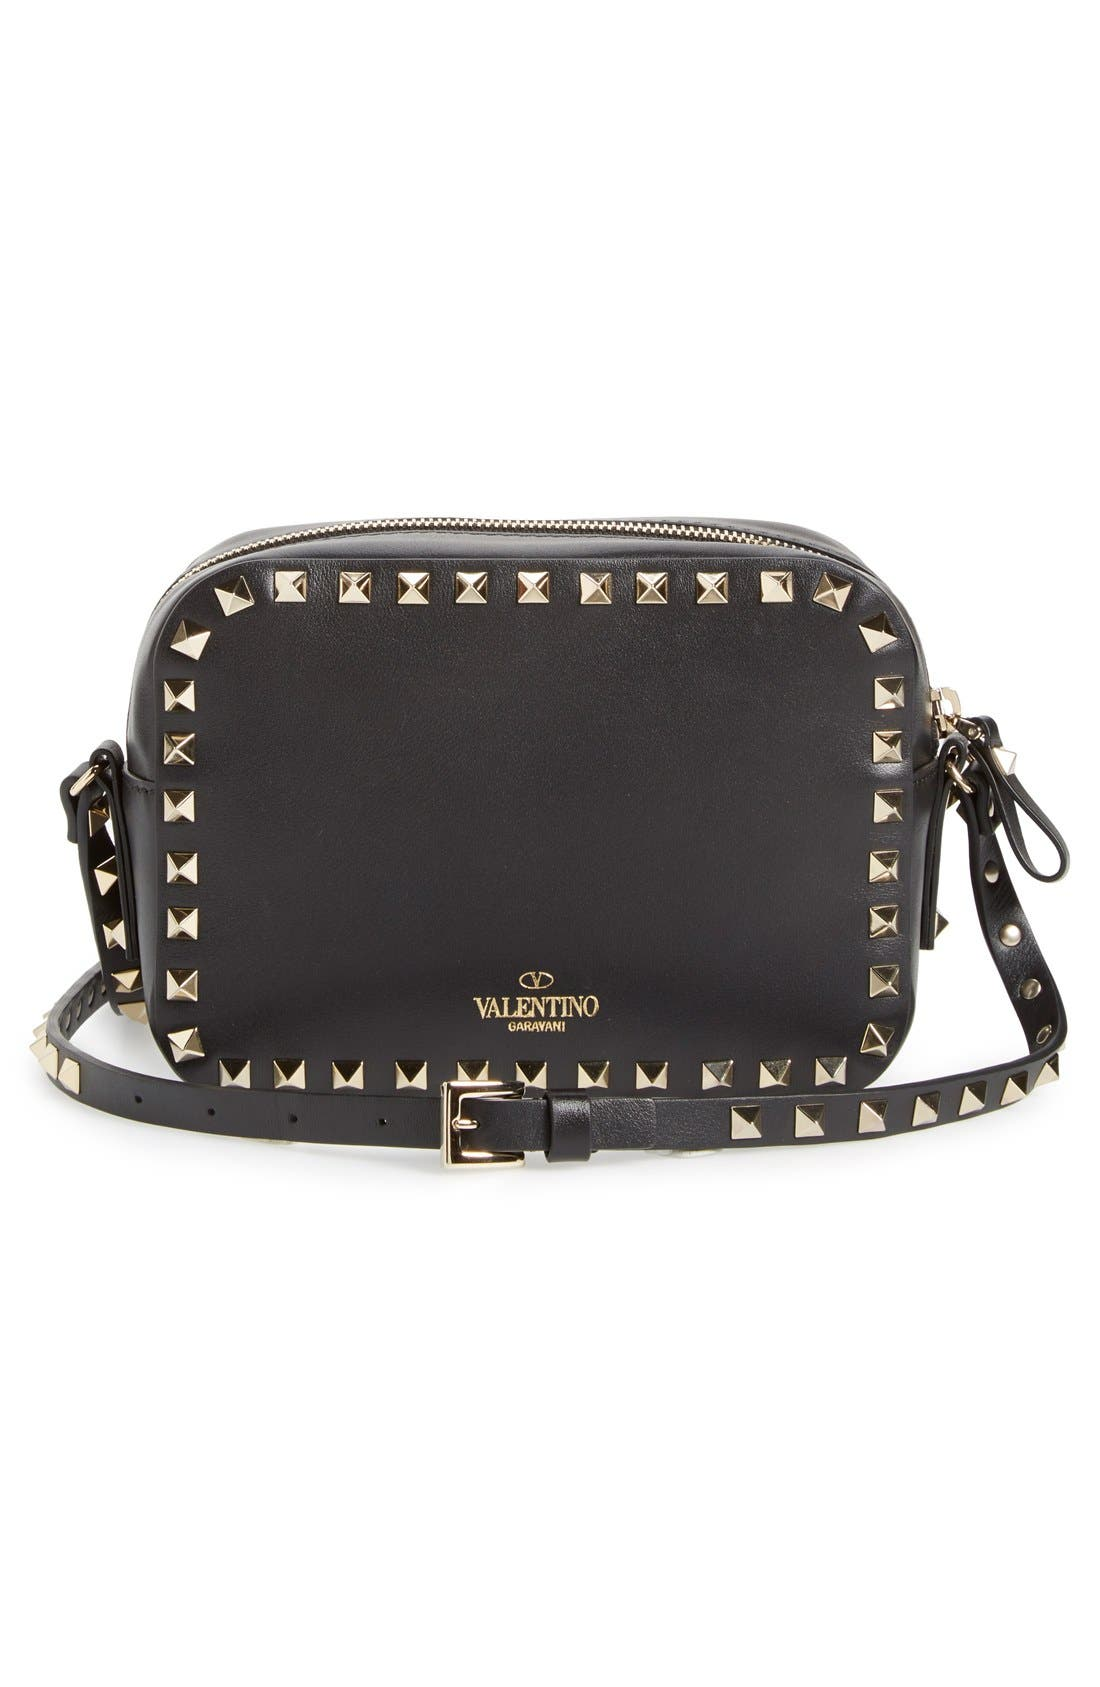 Alternate Image 3  - VALENTINO GARAVANI 'Rockstud' Calfskin Leather Camera Crossbody Bag